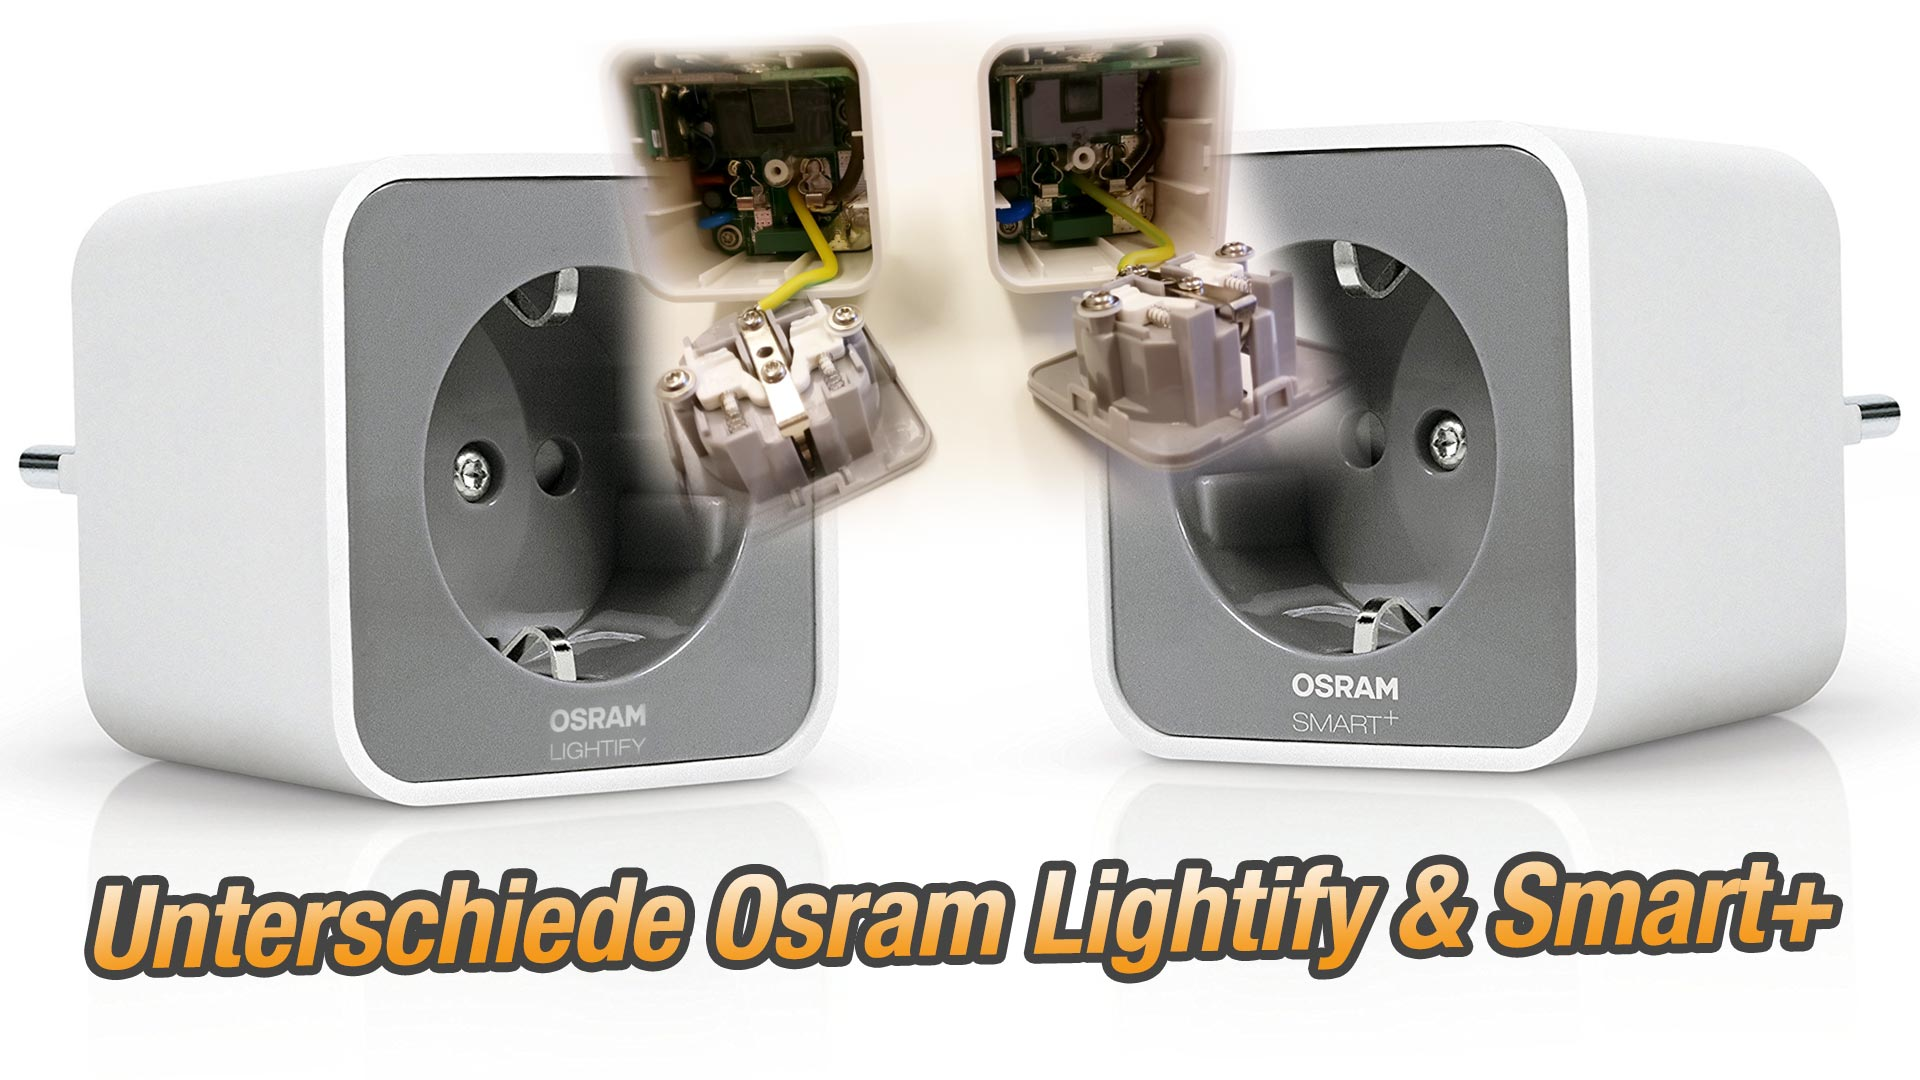 unterschied osram smart plug und osram lightify plug. Black Bedroom Furniture Sets. Home Design Ideas